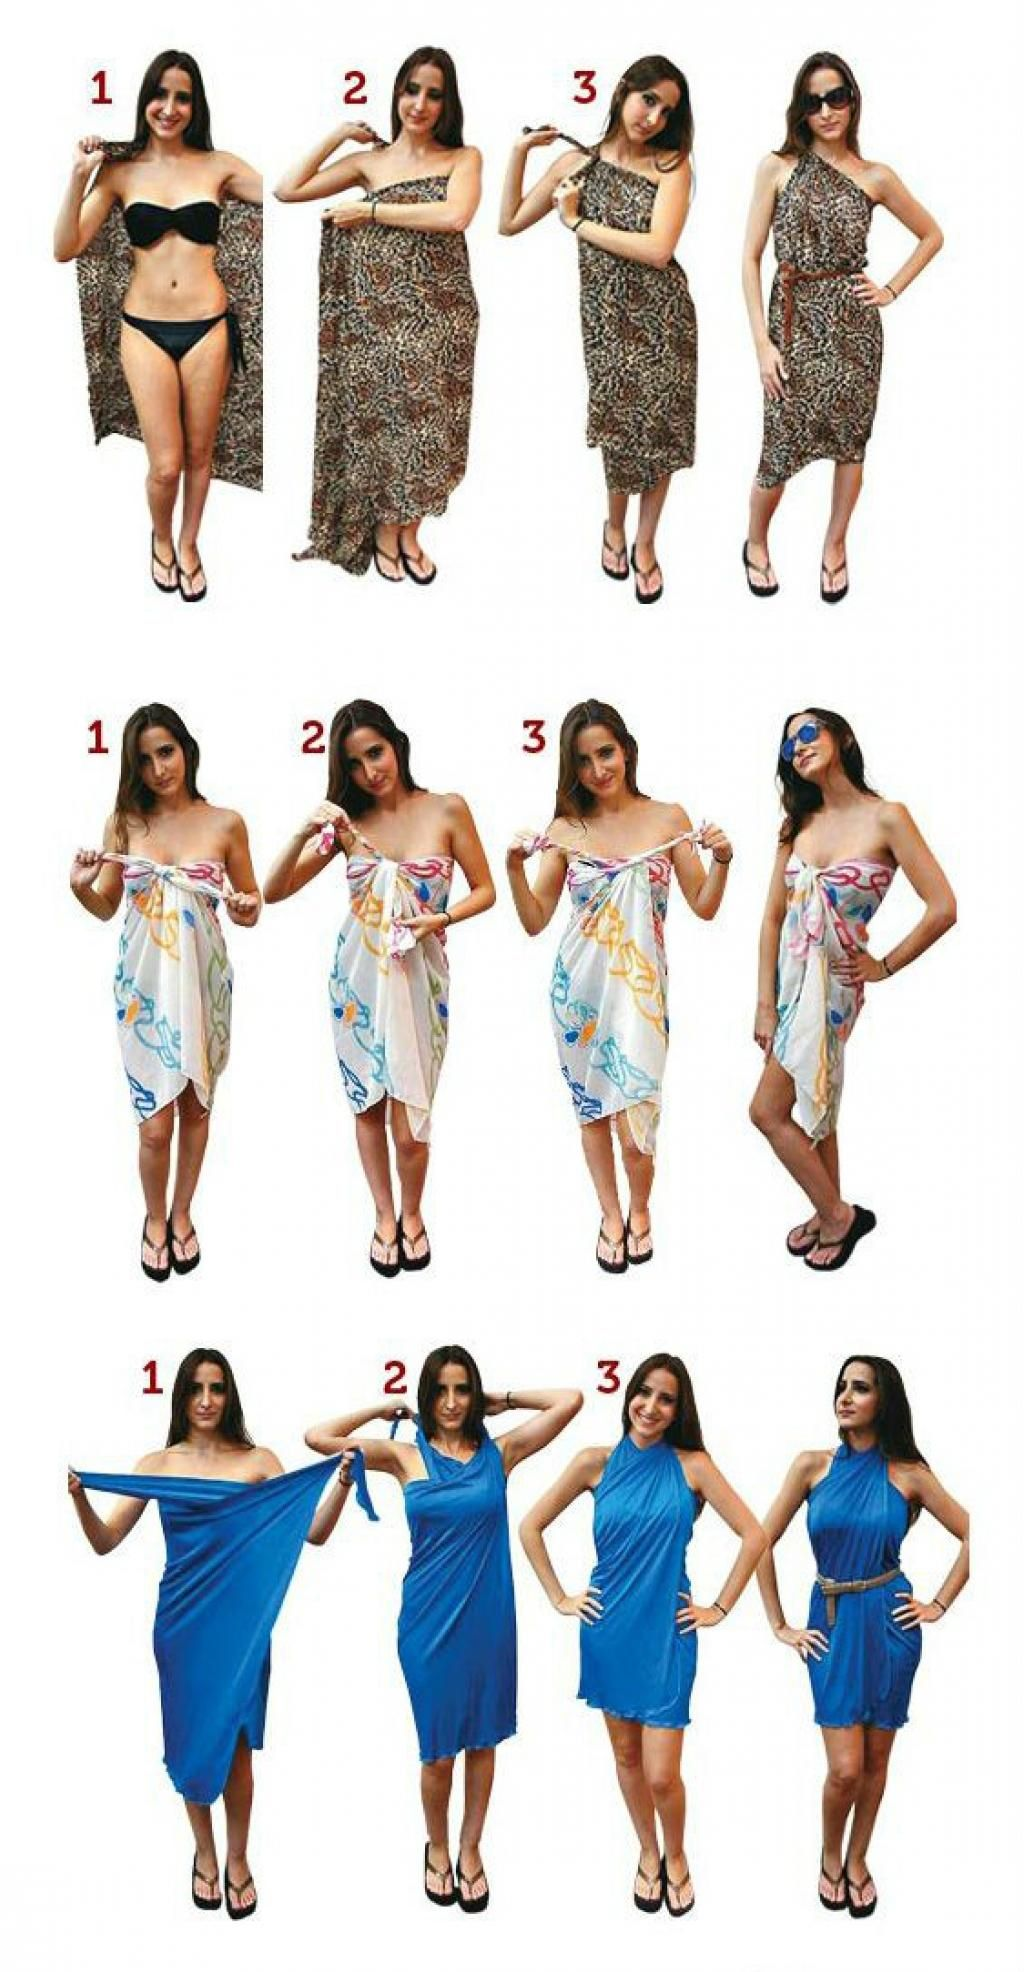 LEARN HOW TO TIE A PAREO TO MAKE SHORTS, A SKIRT AND A DRESS IN A FEW GESTURES!